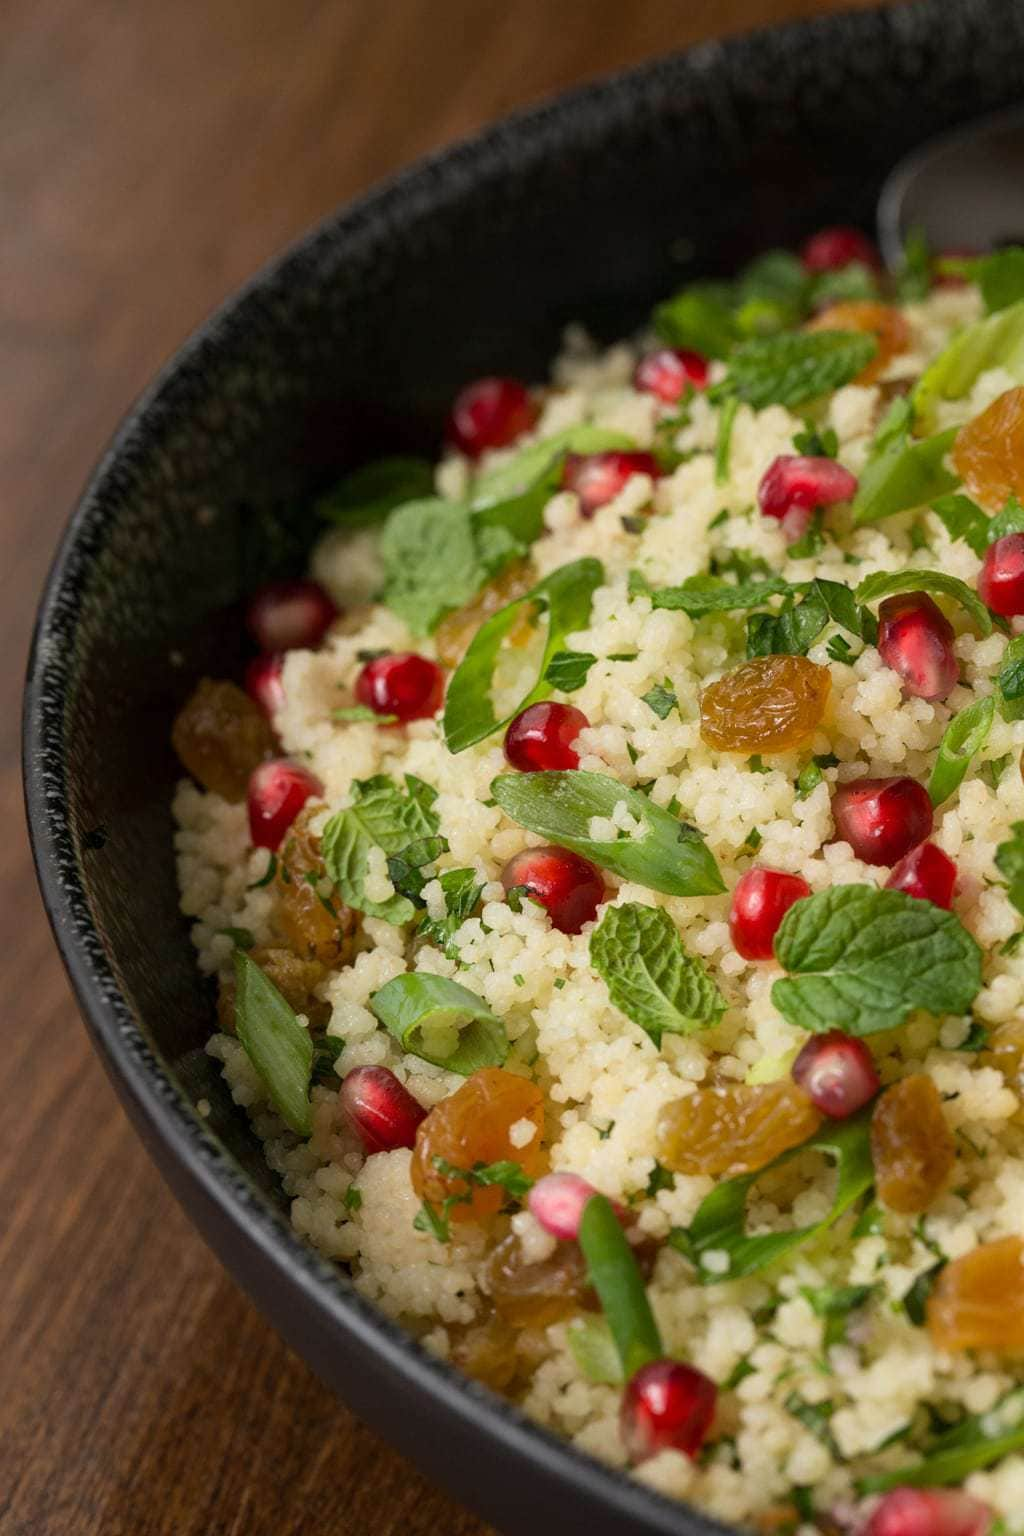 Close up vertical photo of a Pomegranate Parsley Couscous Salad presented in a black bowl.